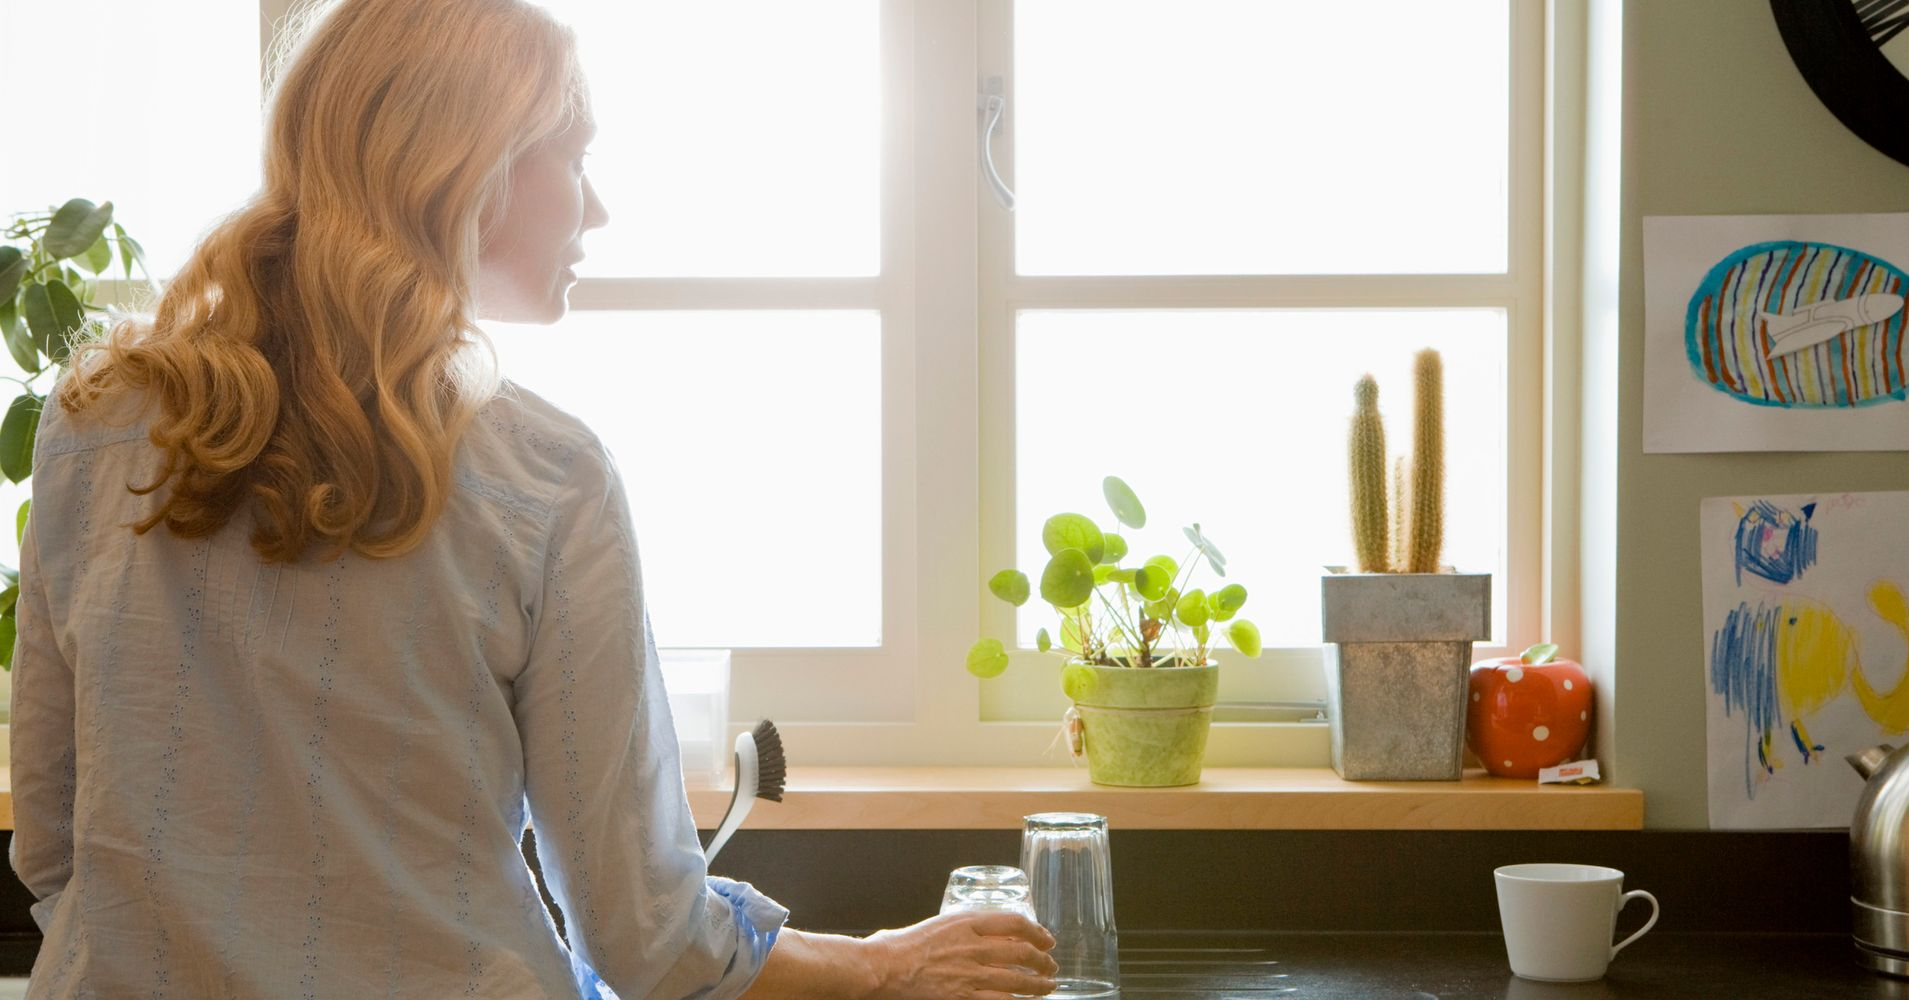 5 Reasons Stepmoms Feel So Alone | HuffPost